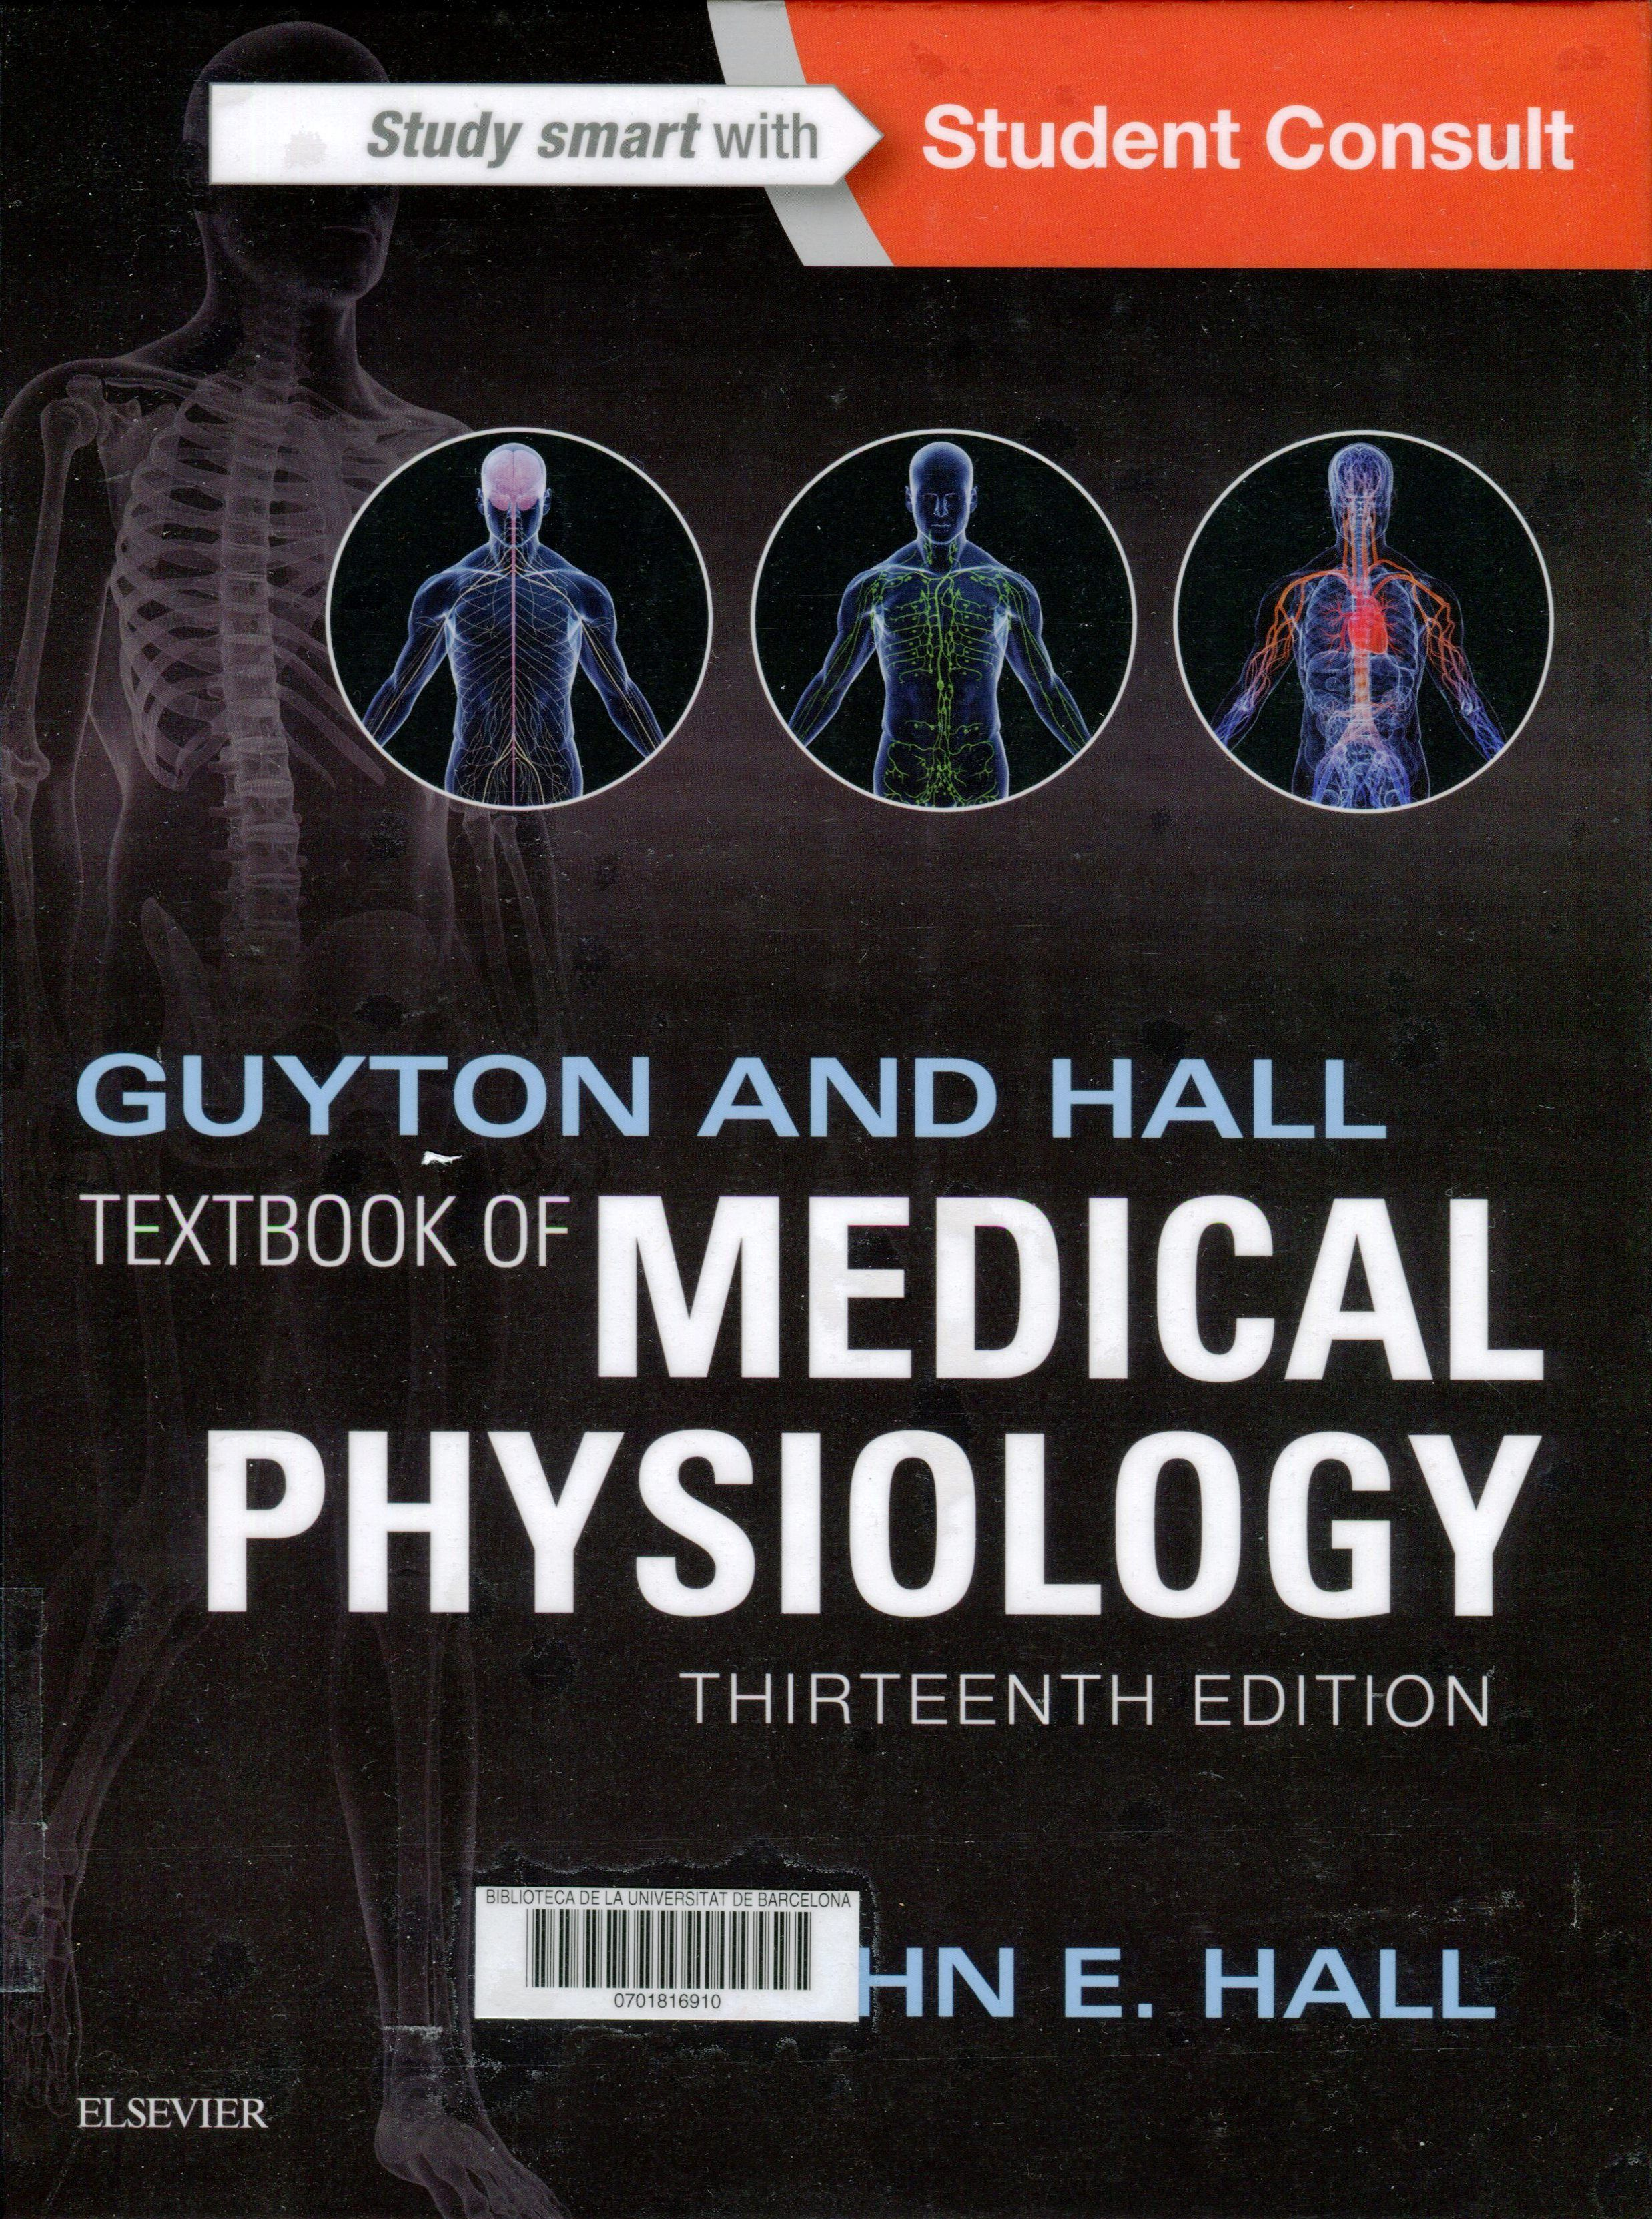 Guyton and hall textbook of medical physiology john e hall 13th guyton and hall textbook of medical physiology john e hall 13th ed philadelphia elsevier cop 2016 novetatscraibiologiaoct15 fandeluxe Images